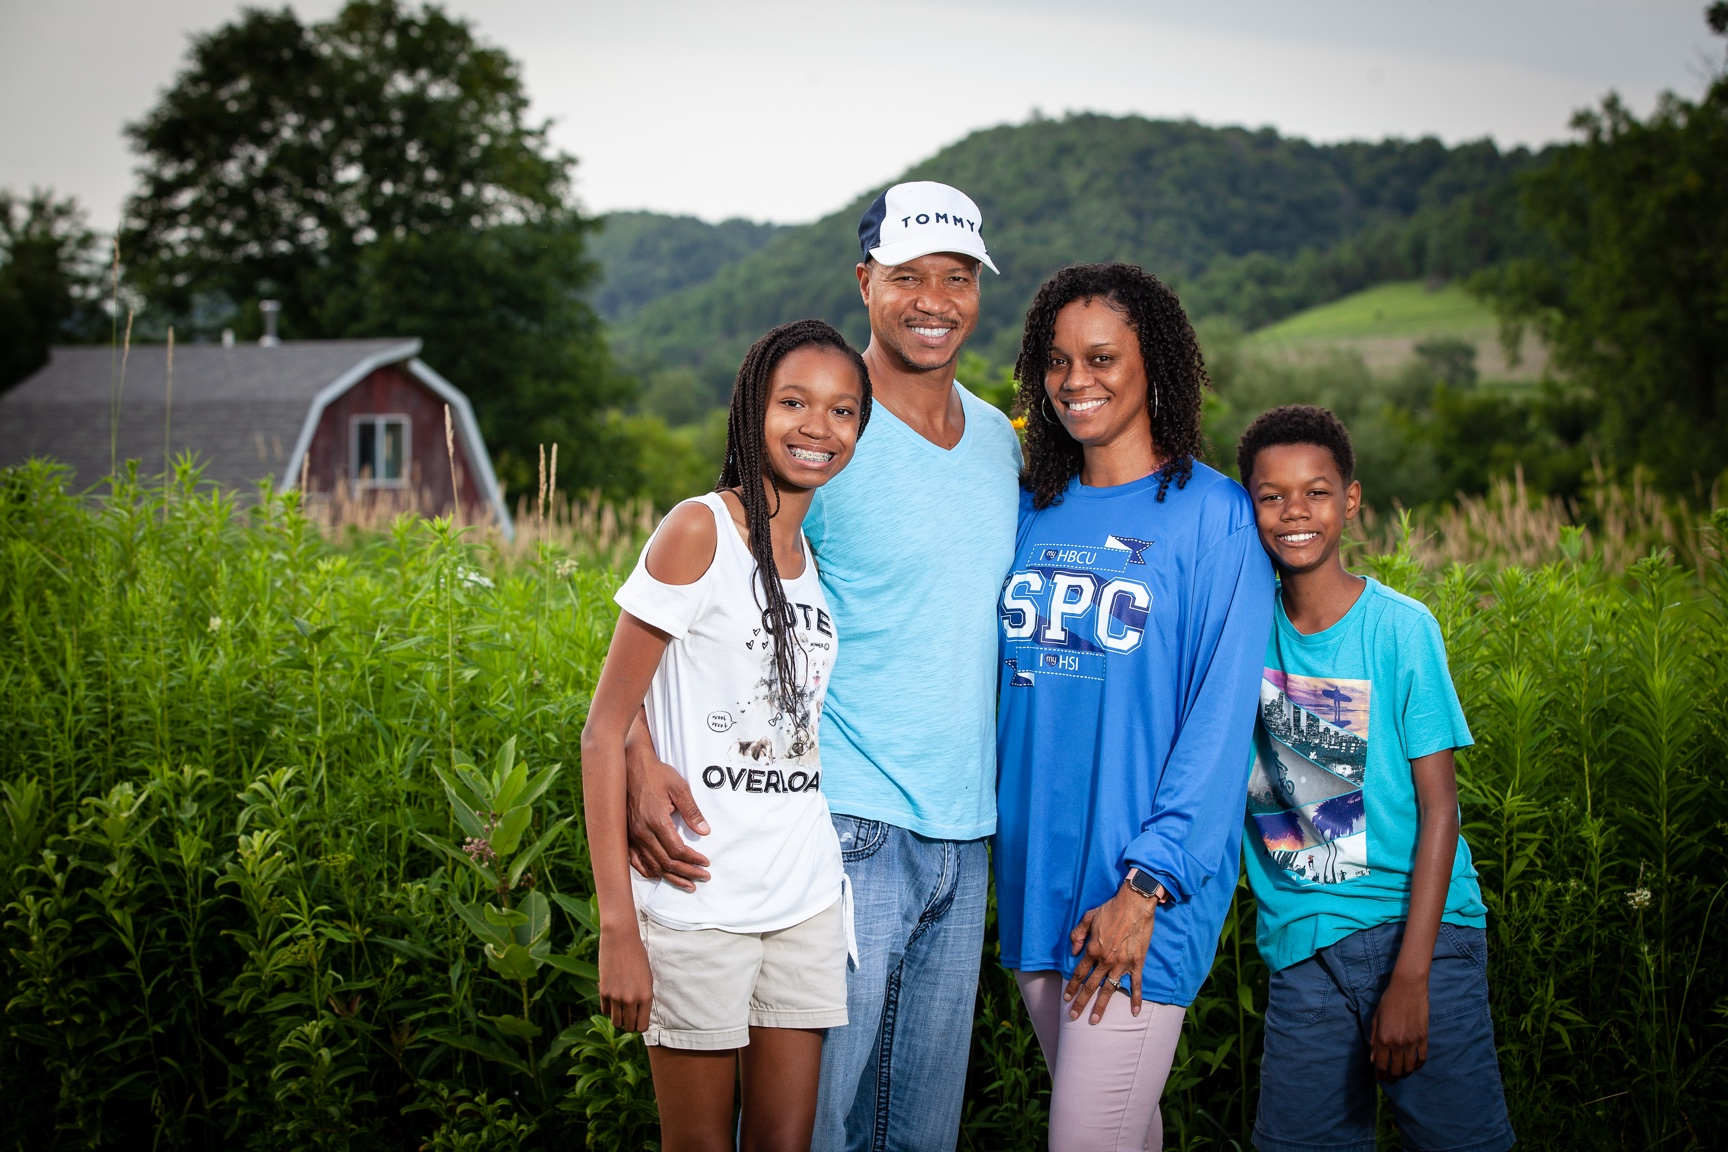 A father, mother, daughter and son pose in front of tall grass and a red barn in the hills of Wisconsin.